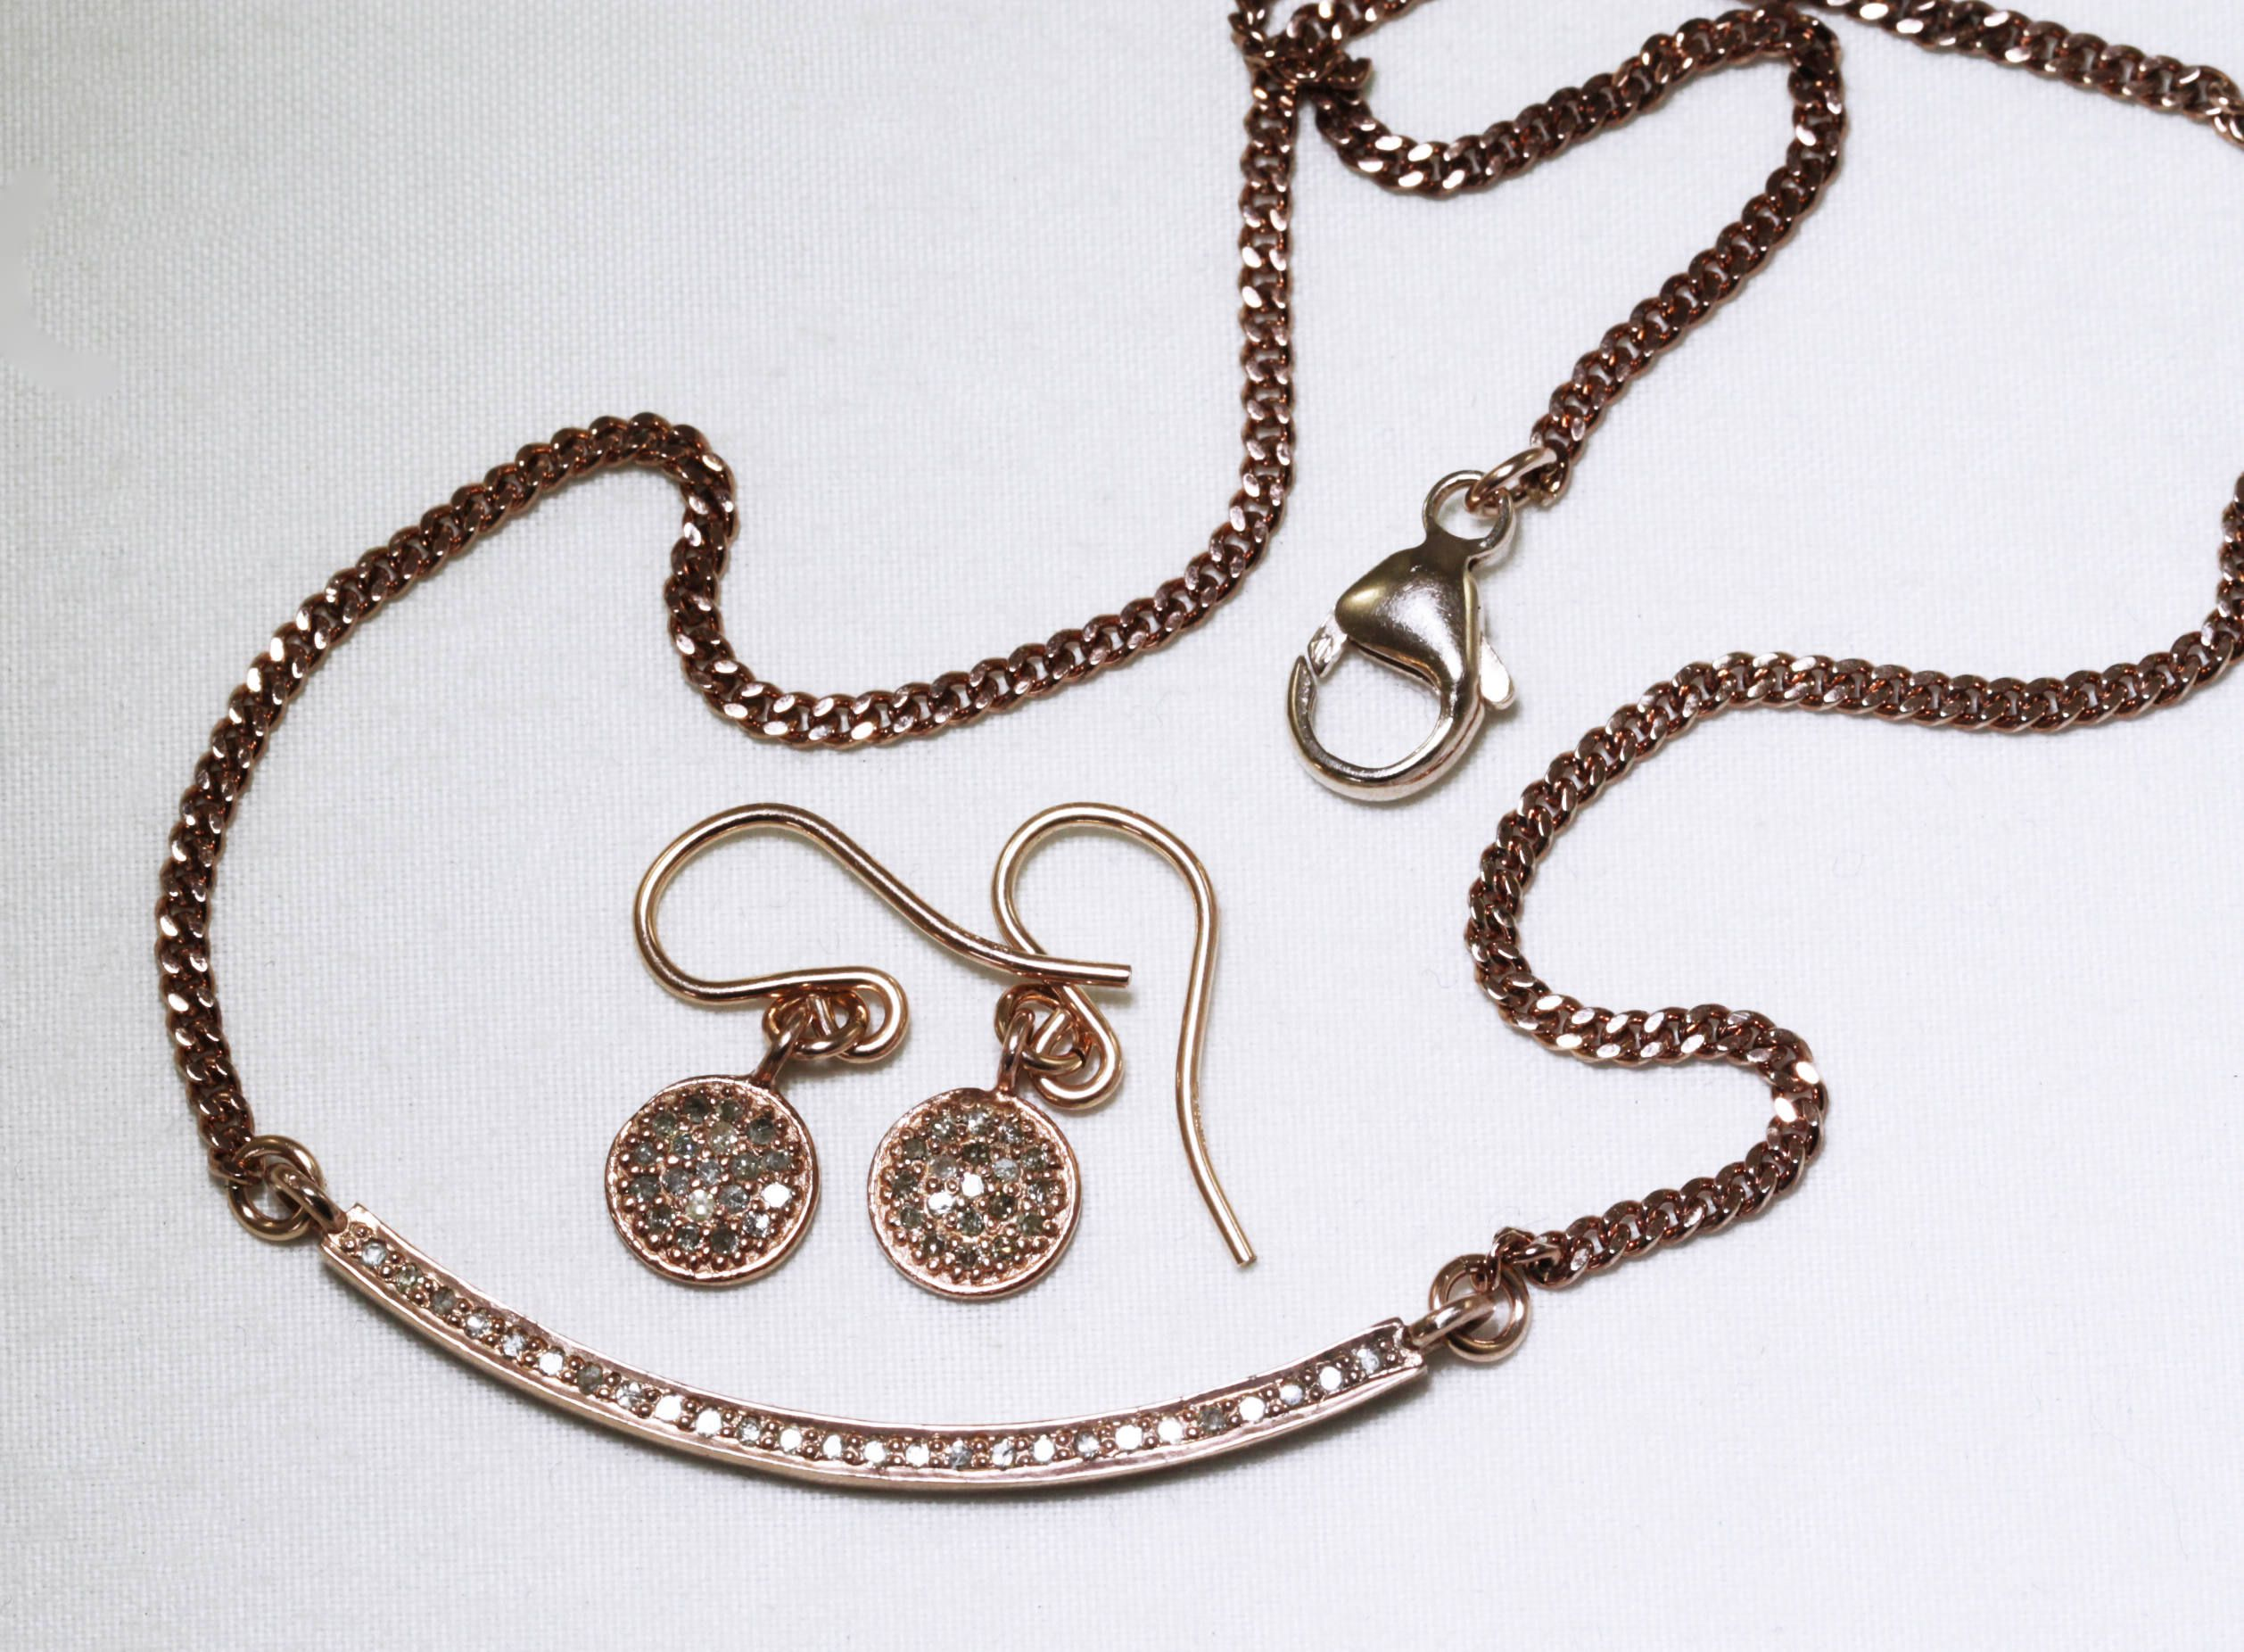 Pav diamond necklace rose gold necklace precious diamond necklace pav diamond necklace rose gold necklace precious diamond necklace real diamond necklace april birthstone necklace pd n 130 rg mozeypictures Gallery